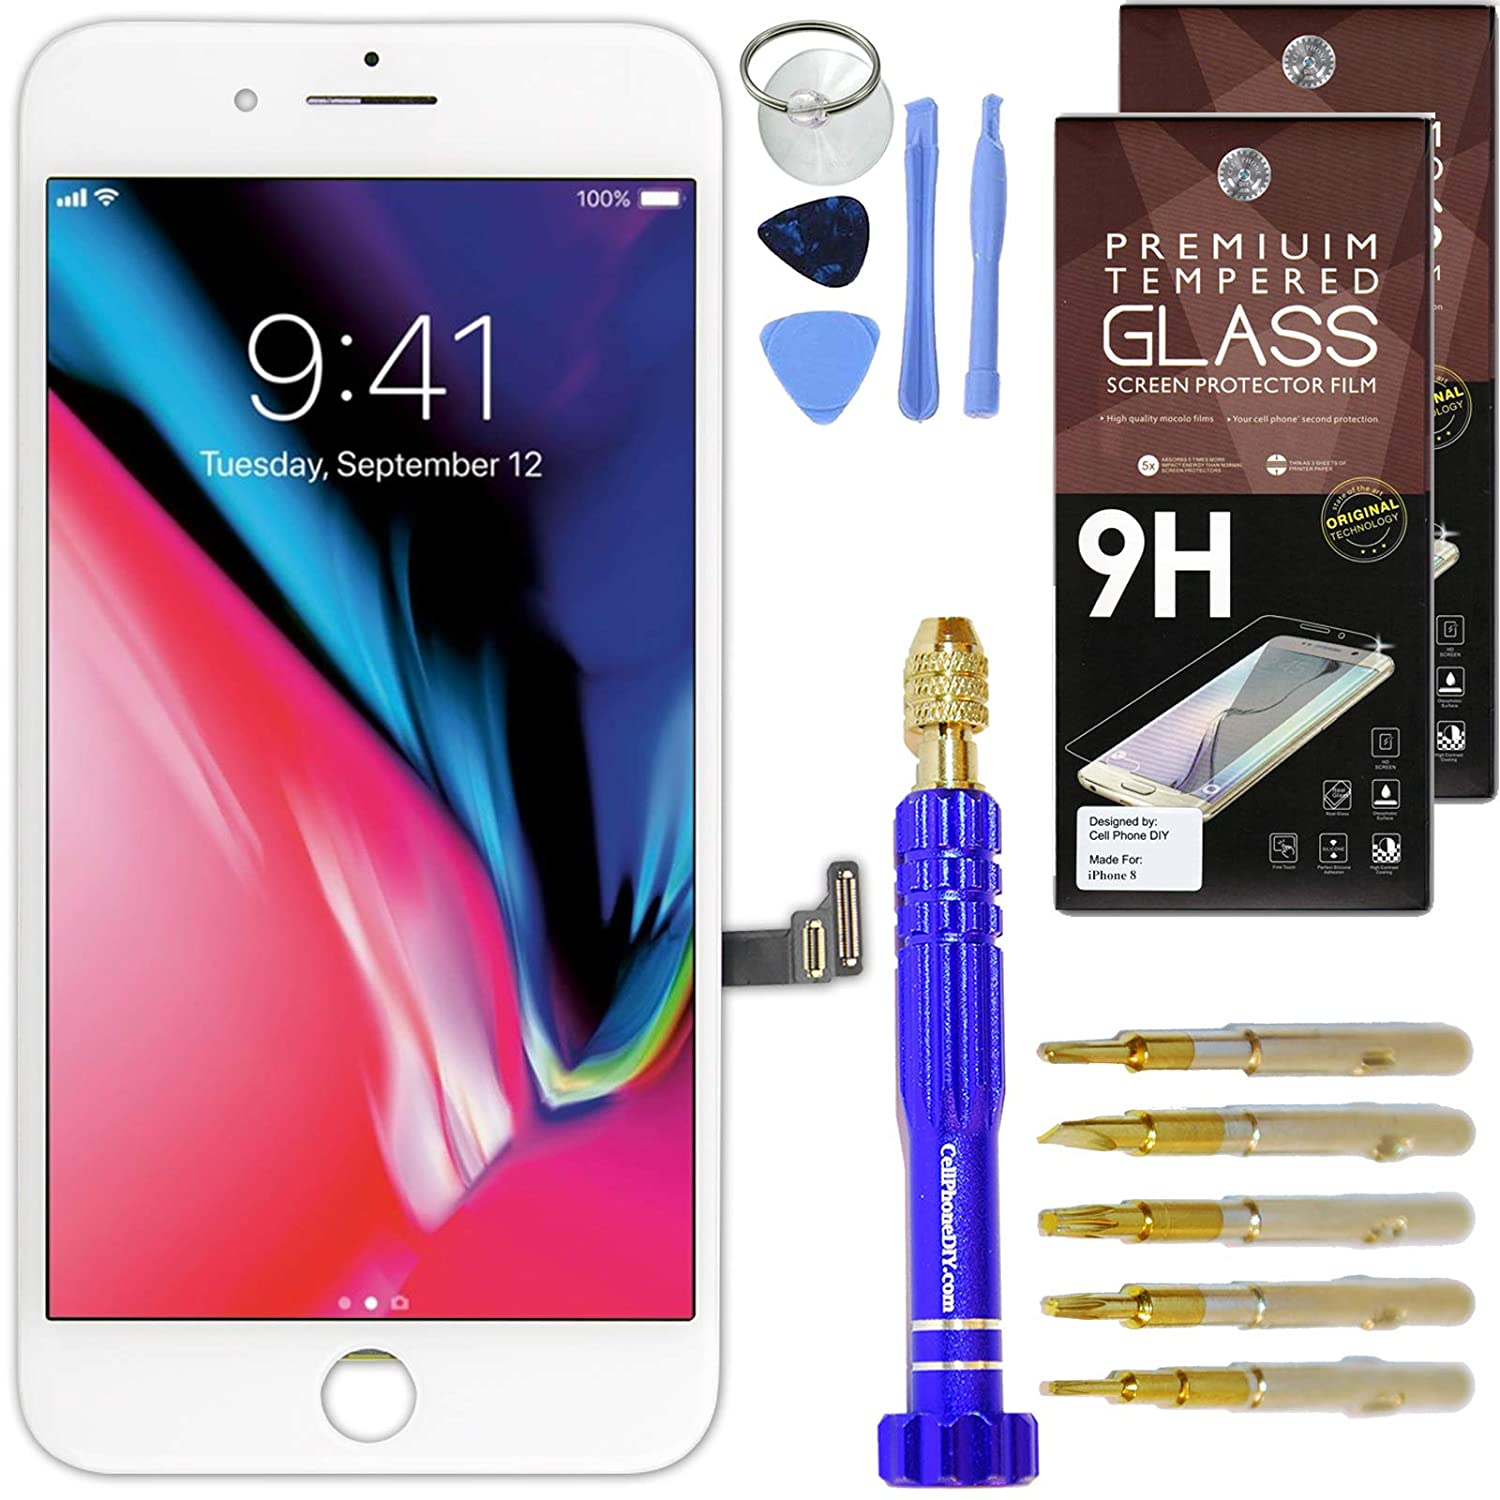 Cell Phone DIY Black iPhone 8 Plus Screen Replacement 5.5' LCD Touch Screen Digitizer Assembly Set + Premium Glass Screen Protector + Pro Repair Tool Kit A1864 A1897 A1898